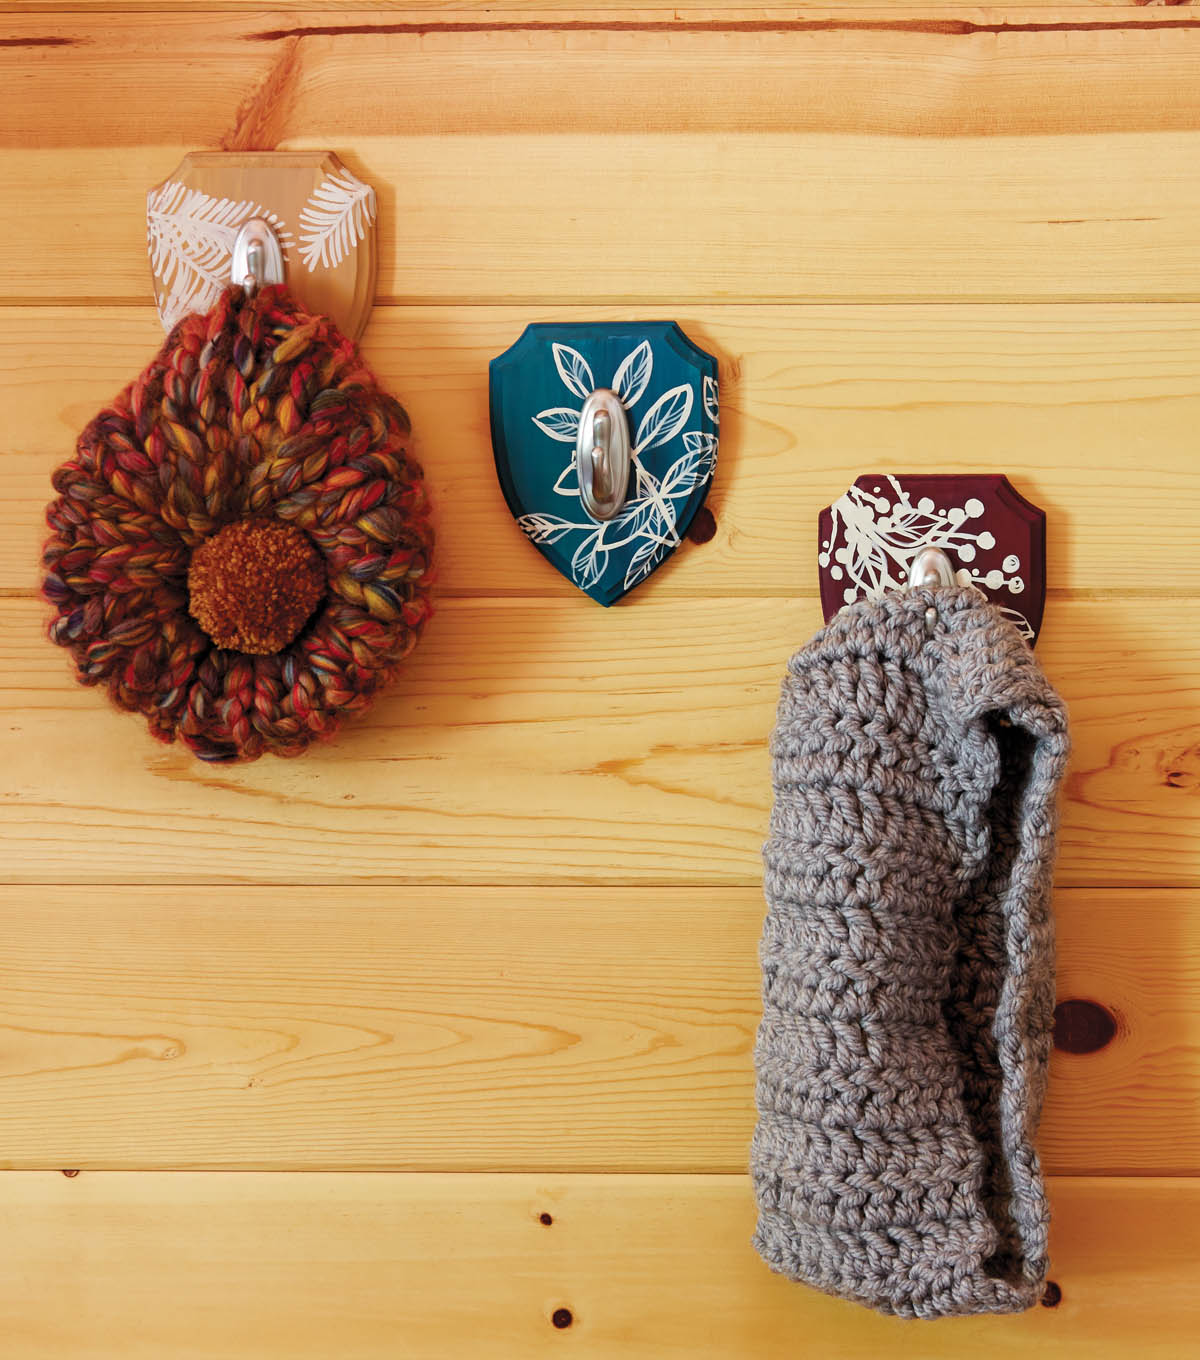 Foliage Plaque Hooks, Chunky Crochet Cowl, and Hat in a Flash